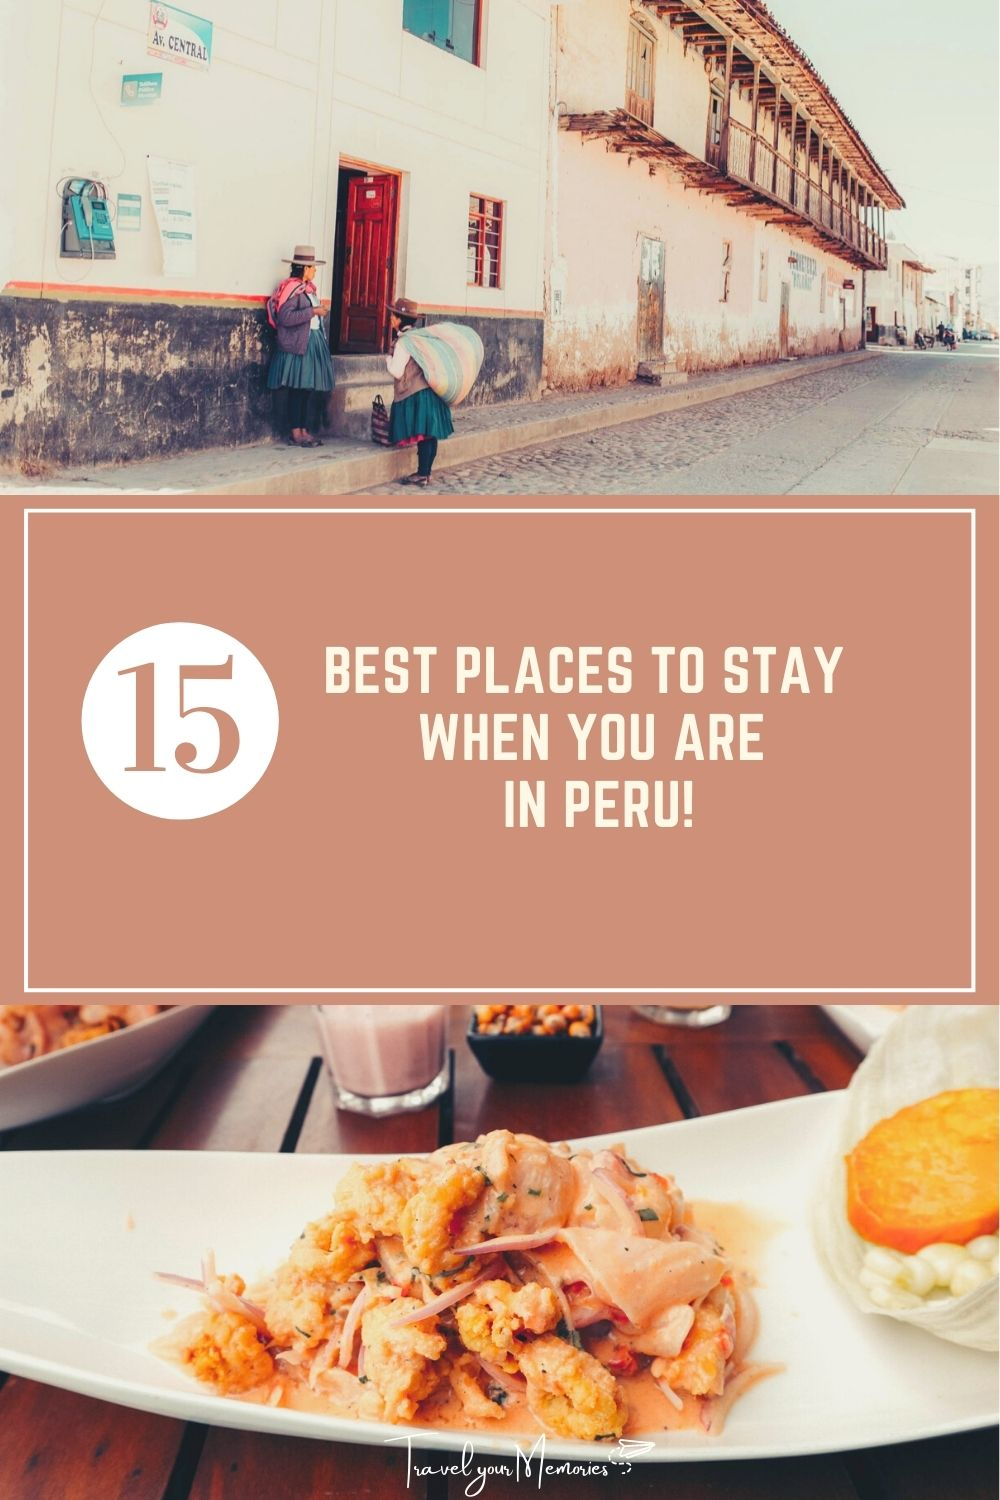 #15 Best places to stay in Peru